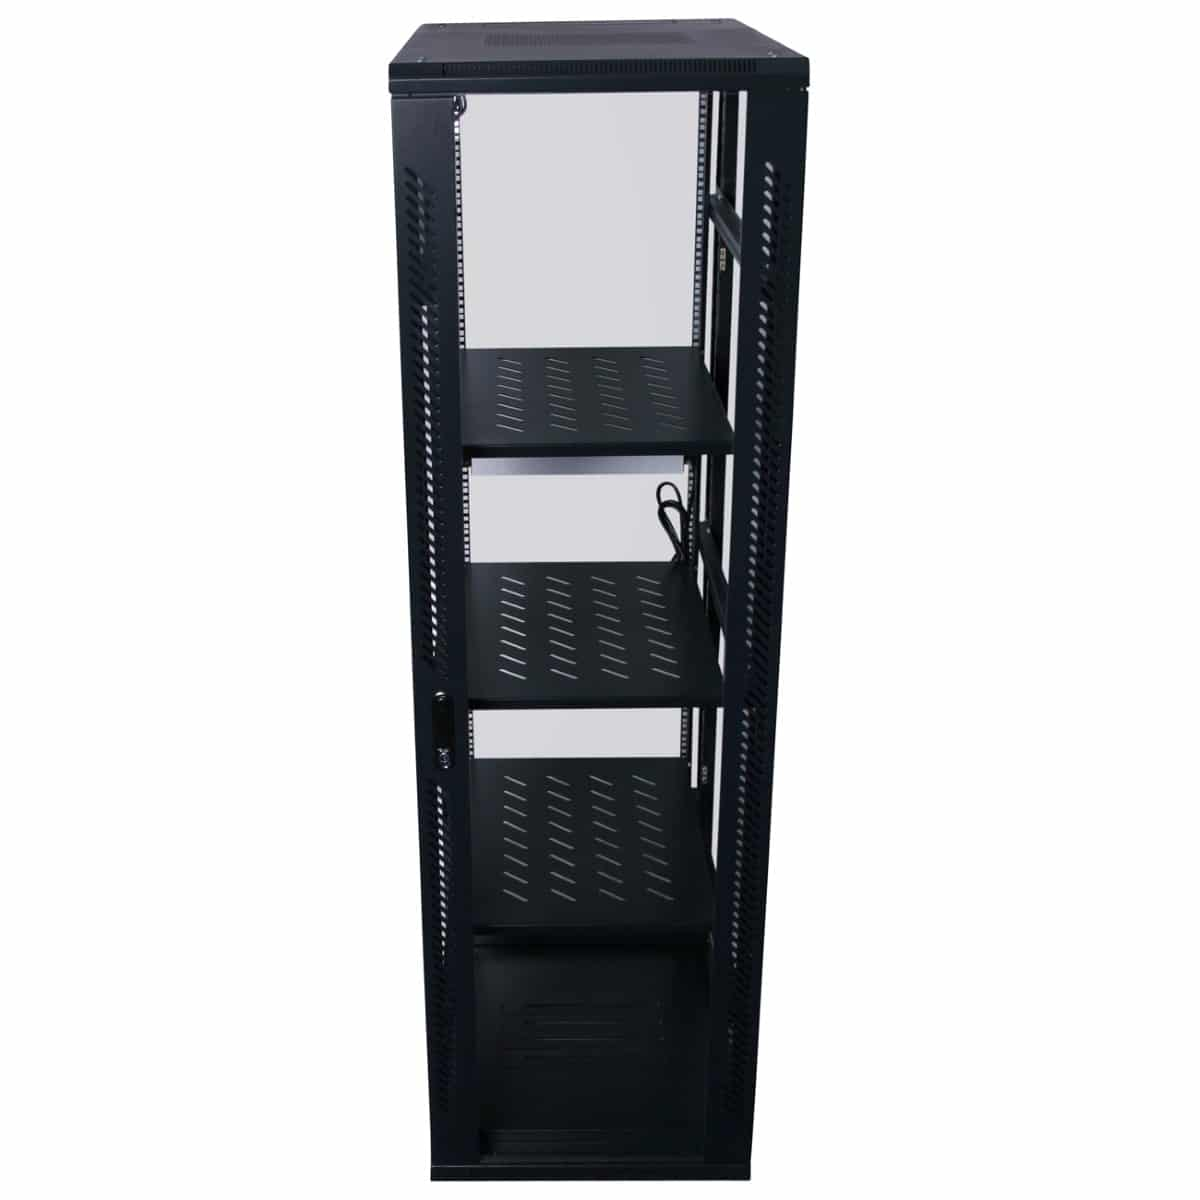 45ru 800mm deep x 600mm wide rack cabinet hcc for 100 floors floor 45